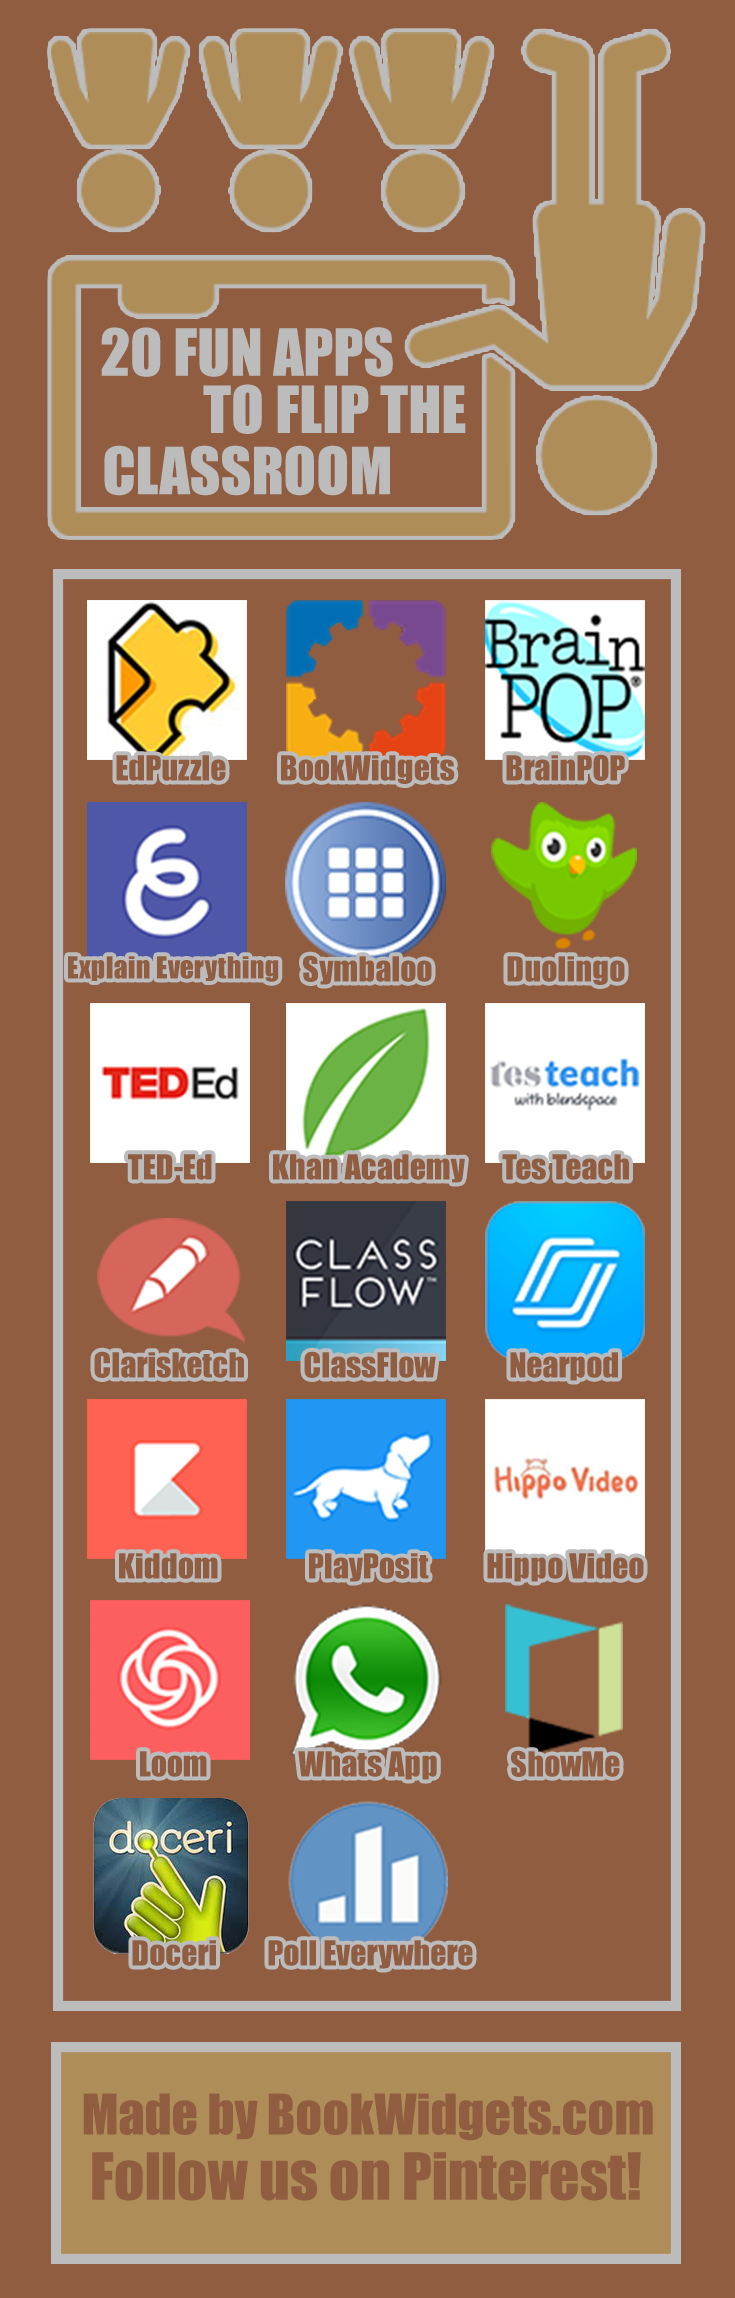 20 flipped classroom apps